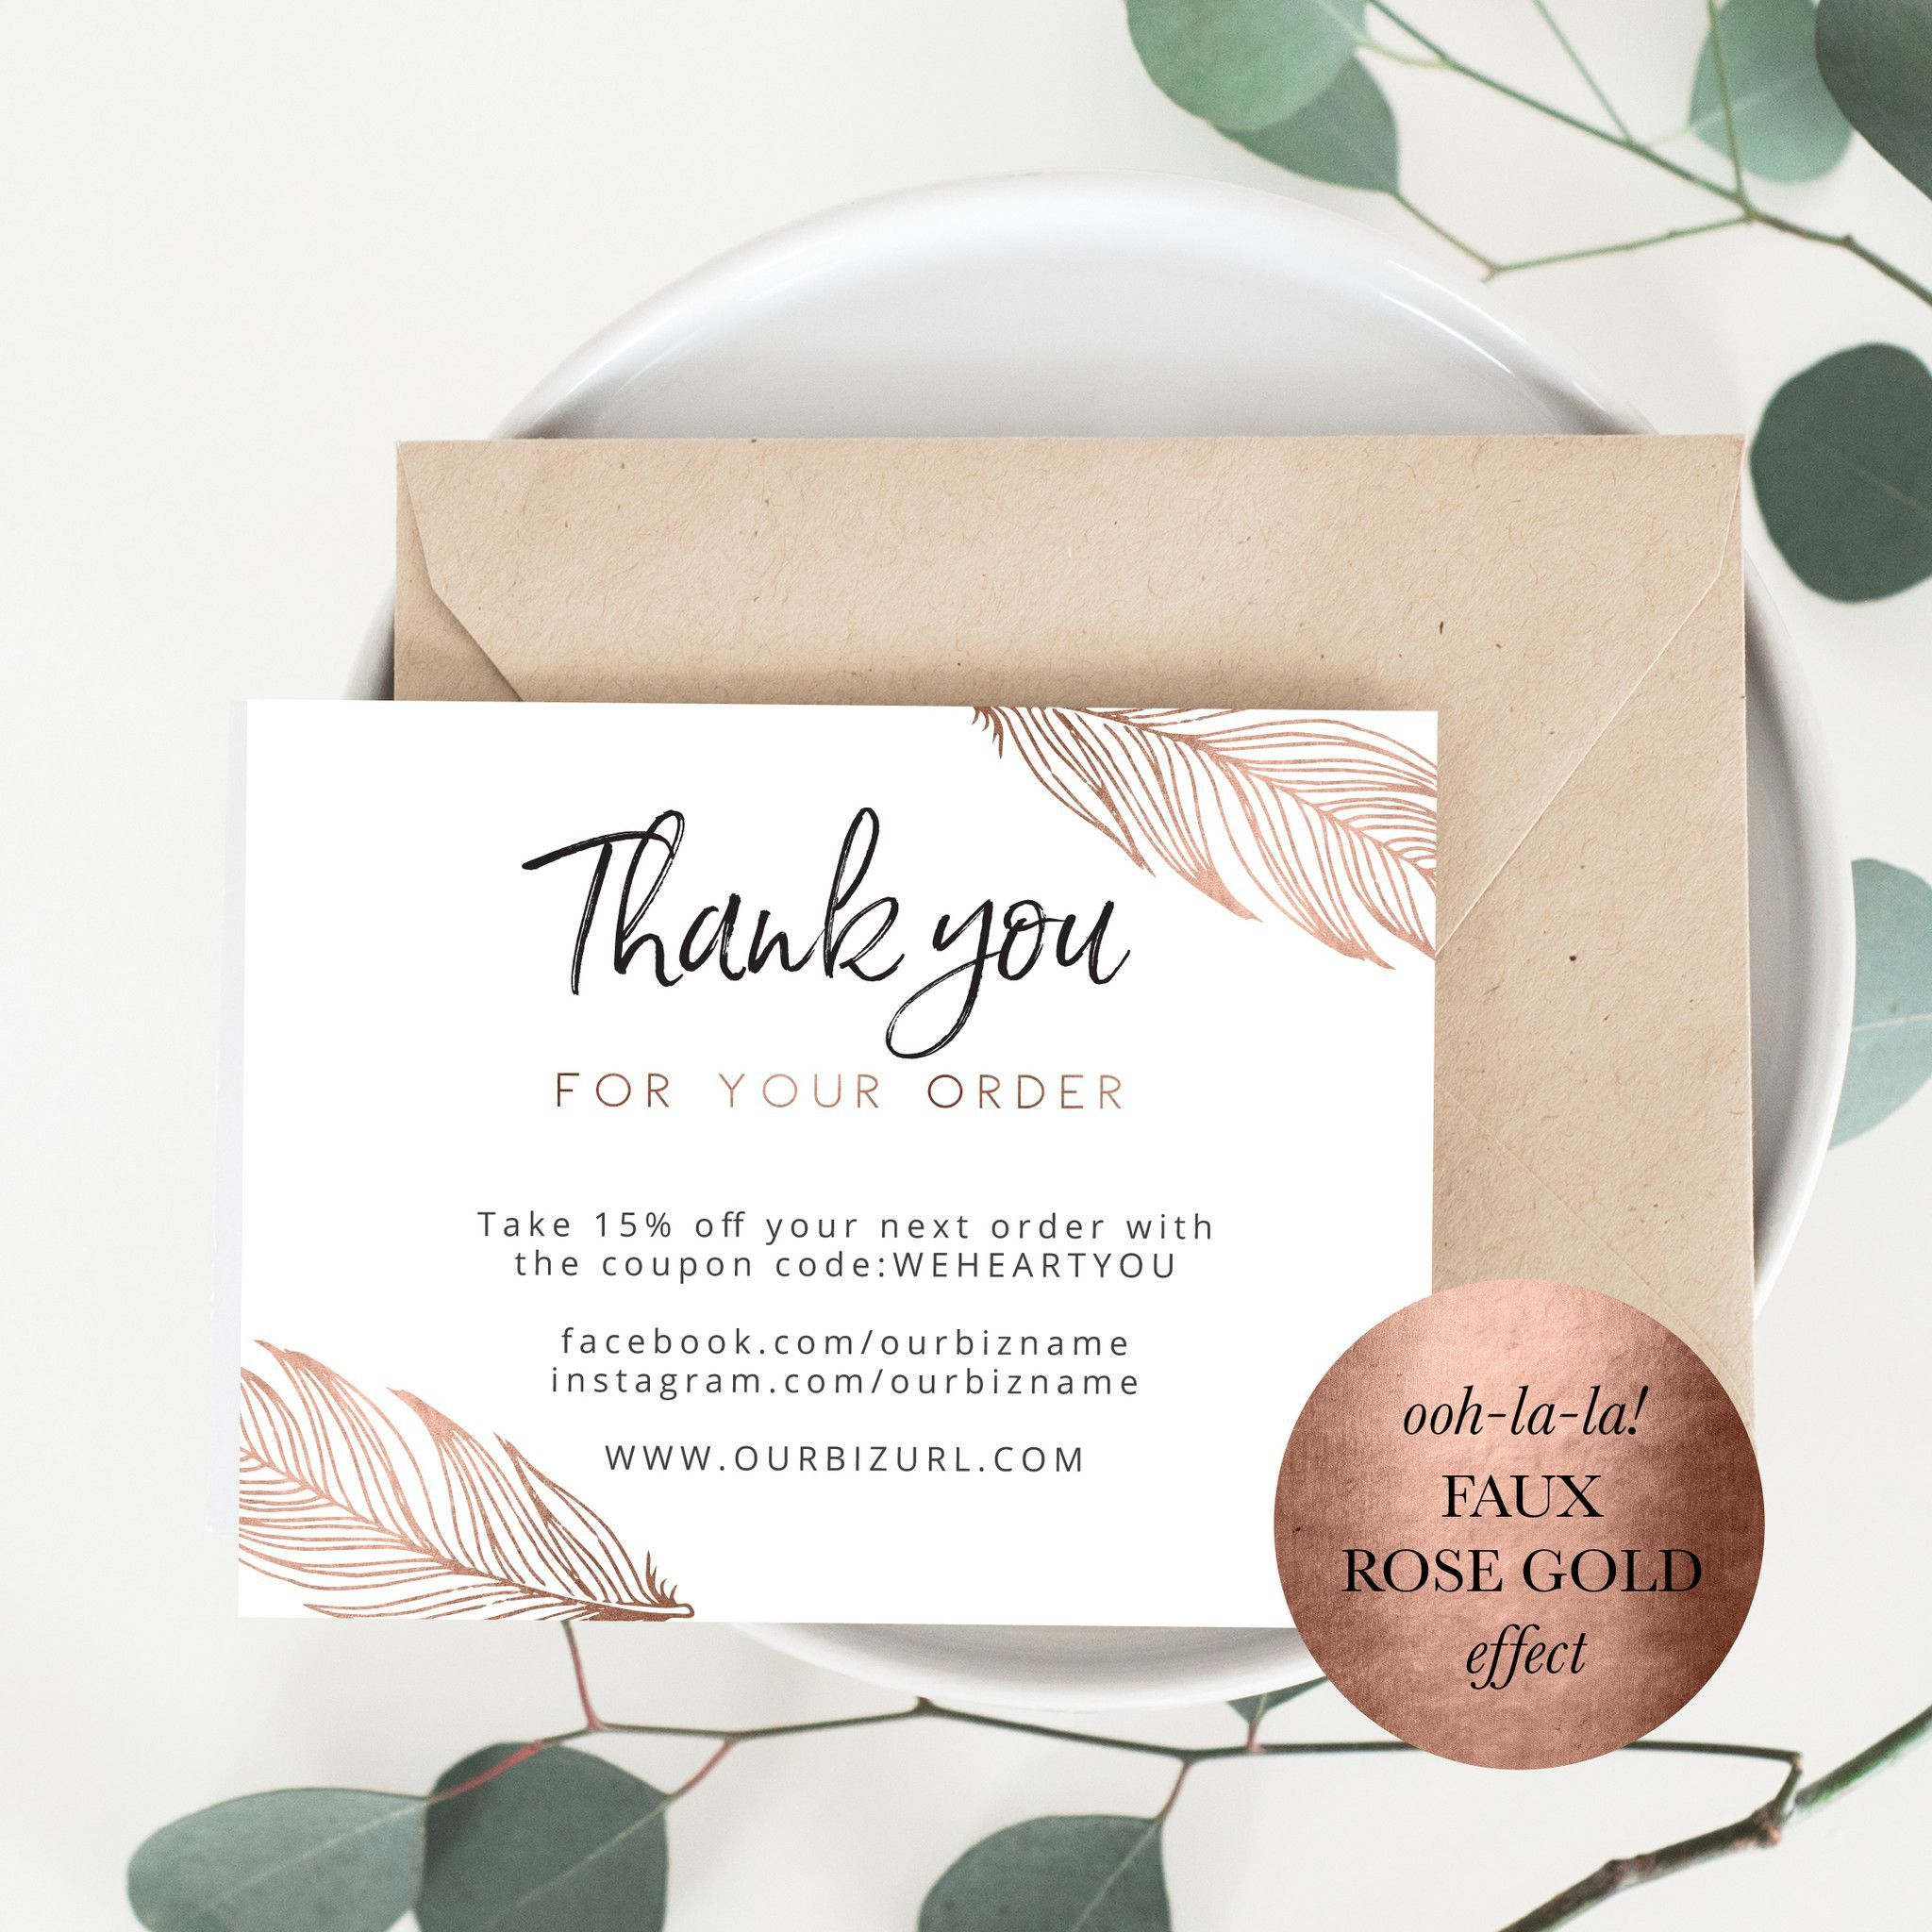 001 Dreaded Thank You Card Template High Resolution  Wedding Busines Word FreeFull